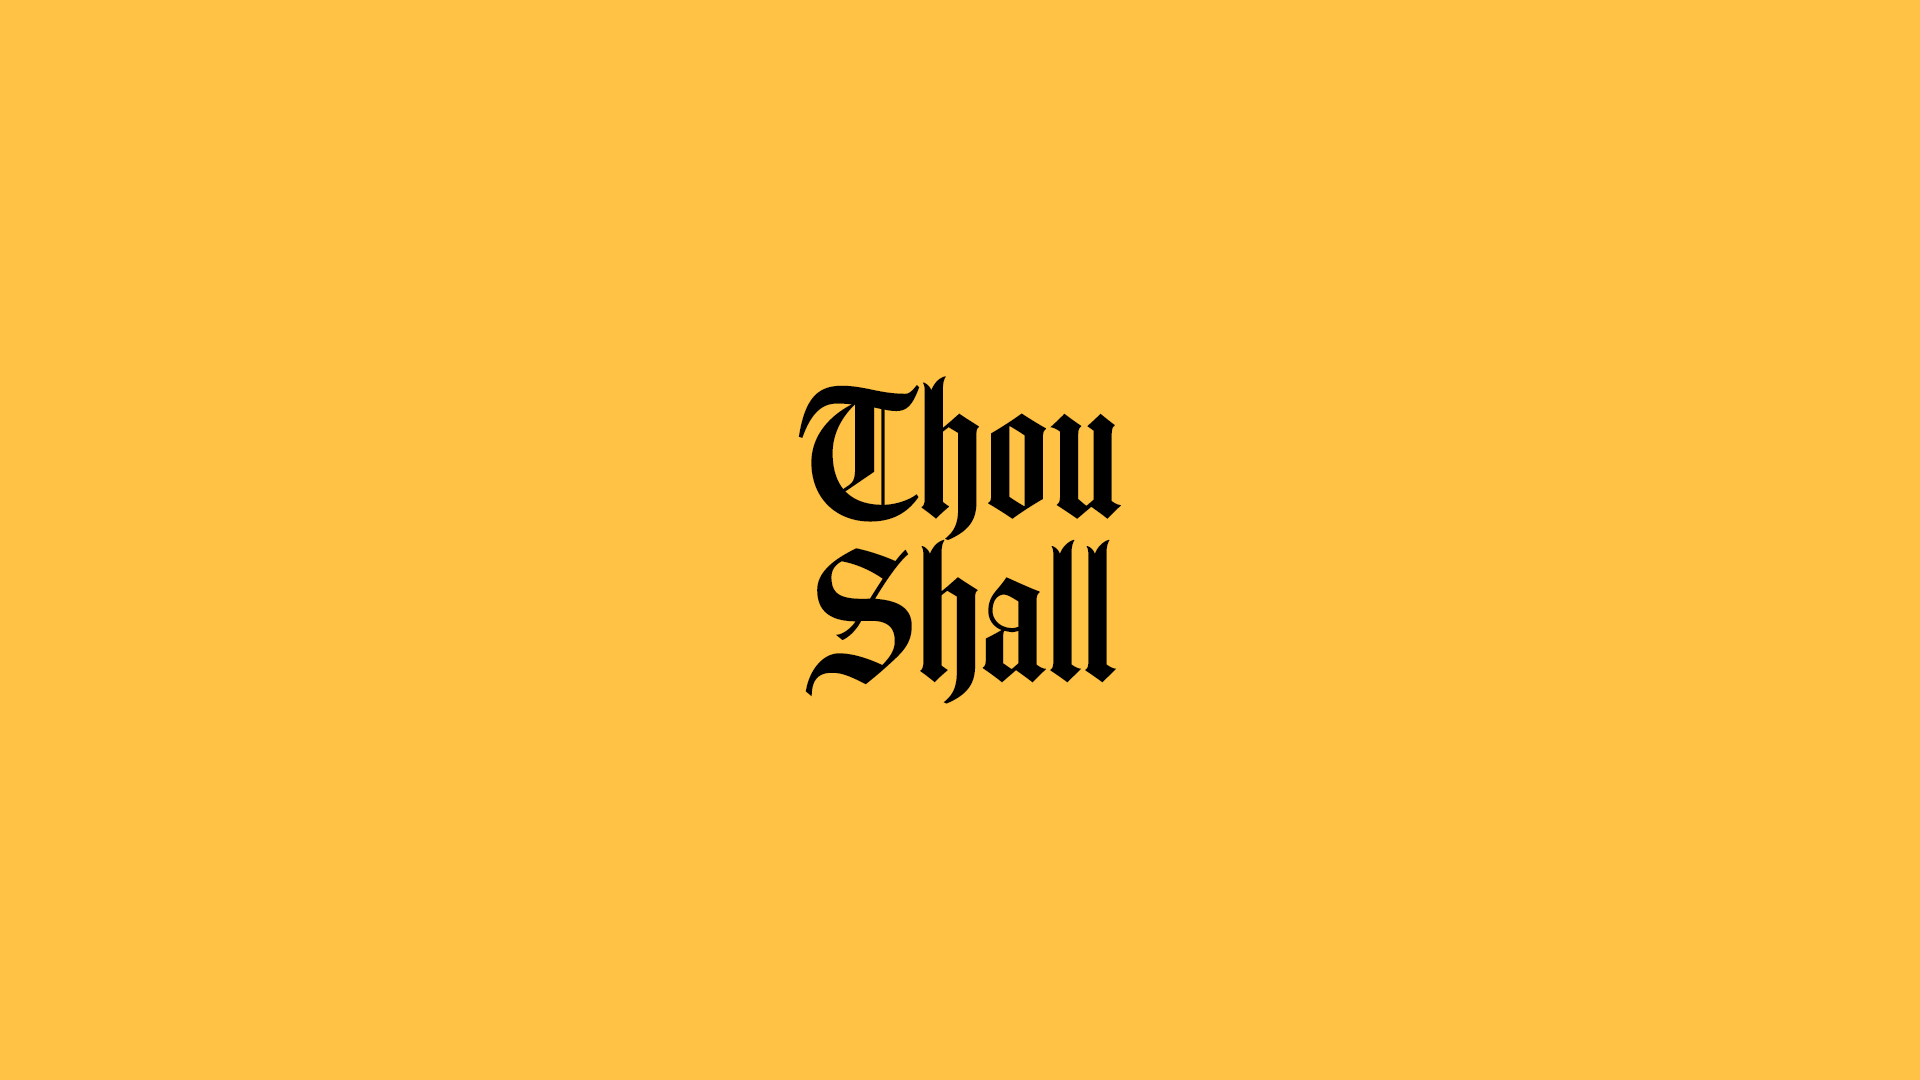 Thou shall worship center